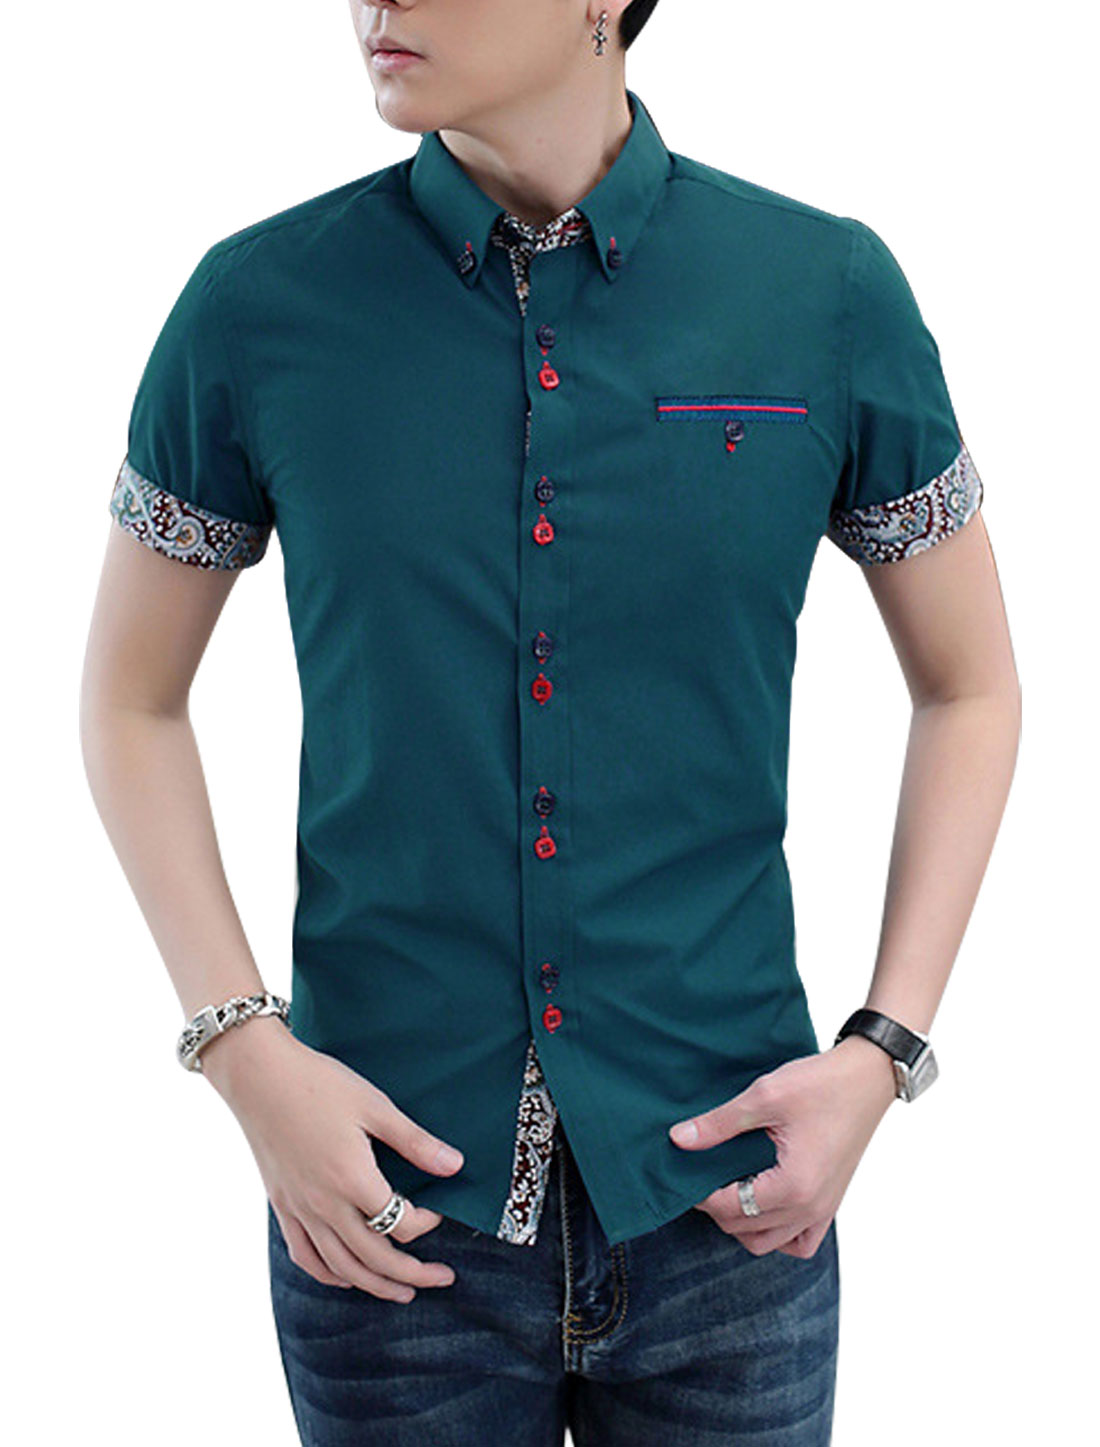 Man Point Collar Button Up Short Sleeves Rolled Cuffs Shirt Turquoise M